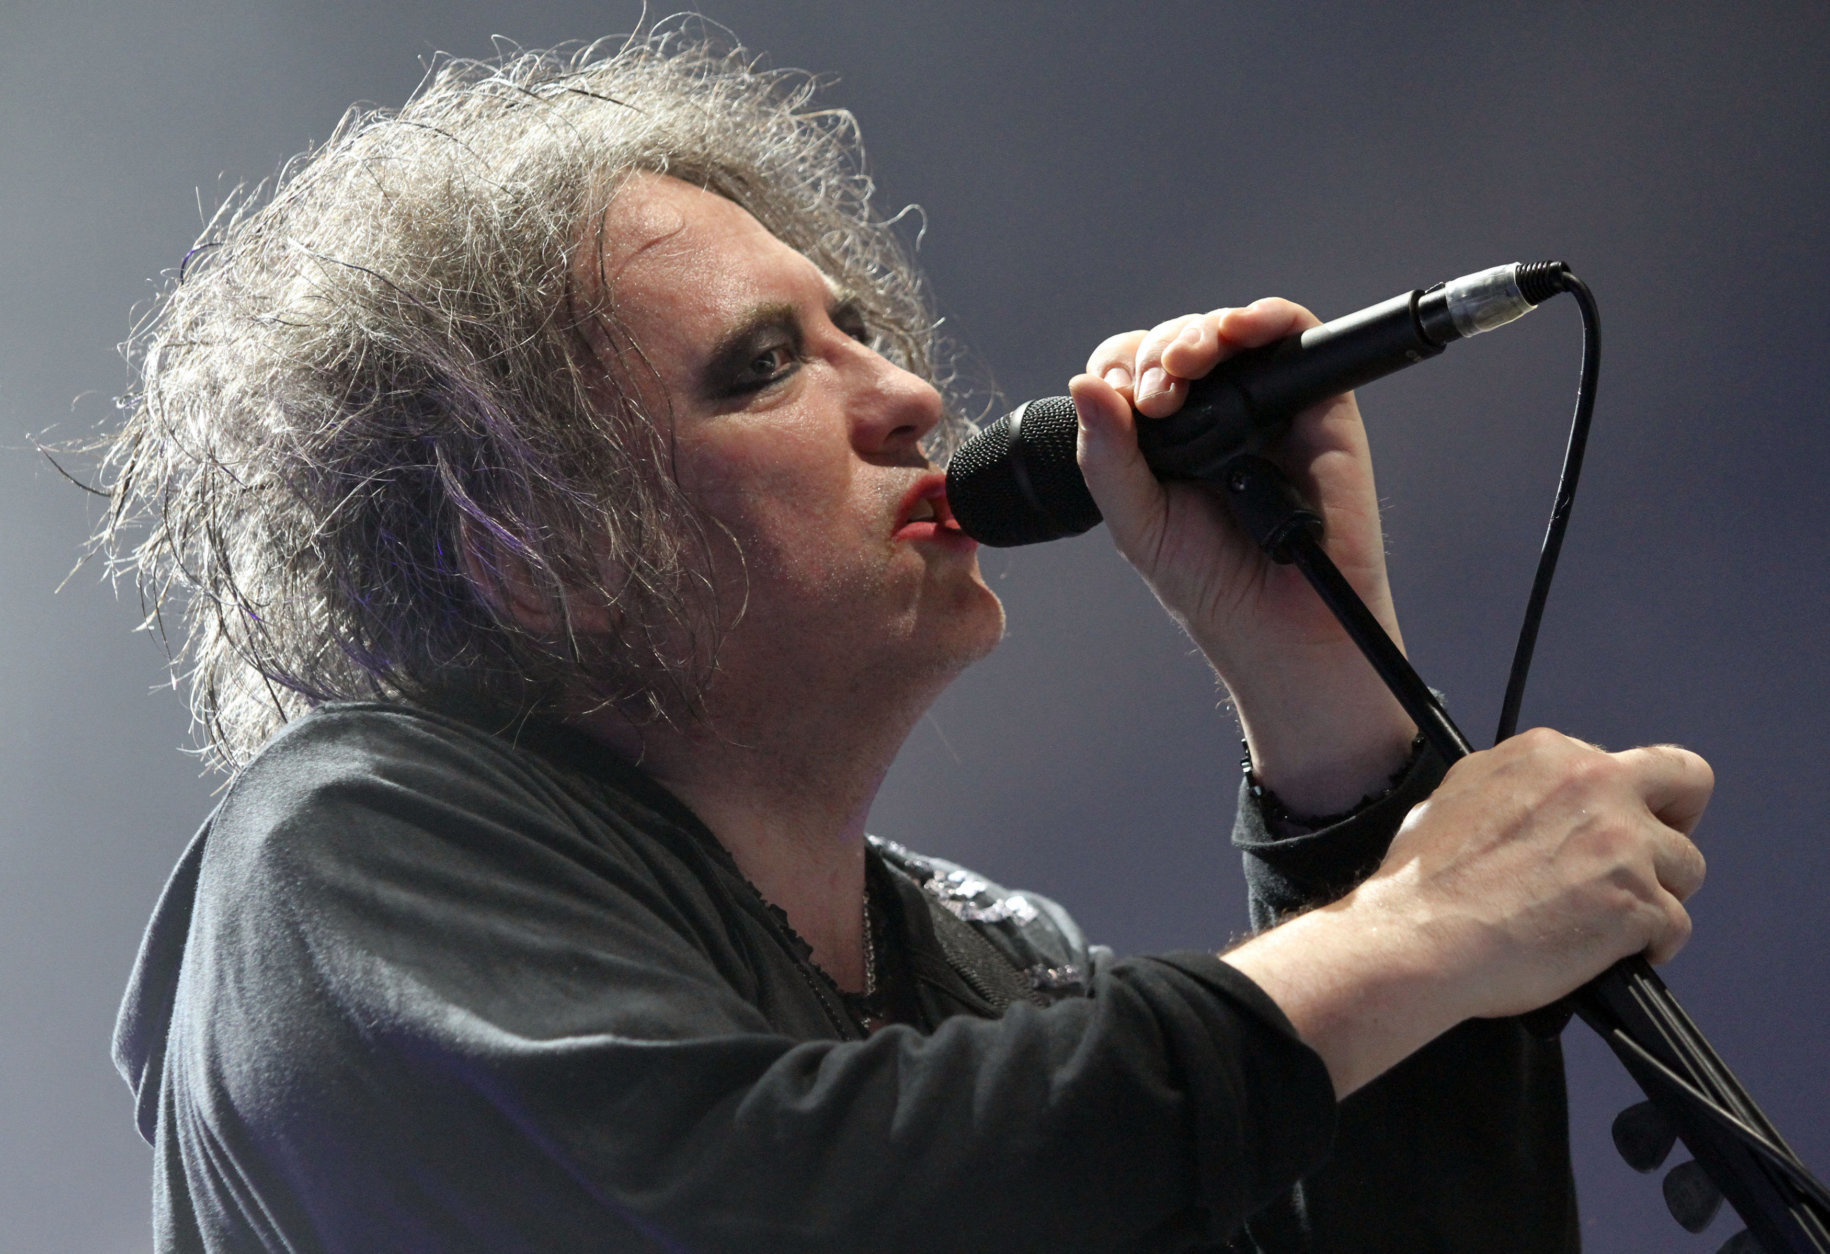 Robert Smith with The Cure performs at Lakewood Amphitheatre on Friday, June 24, 2016, in Atlanta. (Photo by Robb Cohen/Invision/AP)